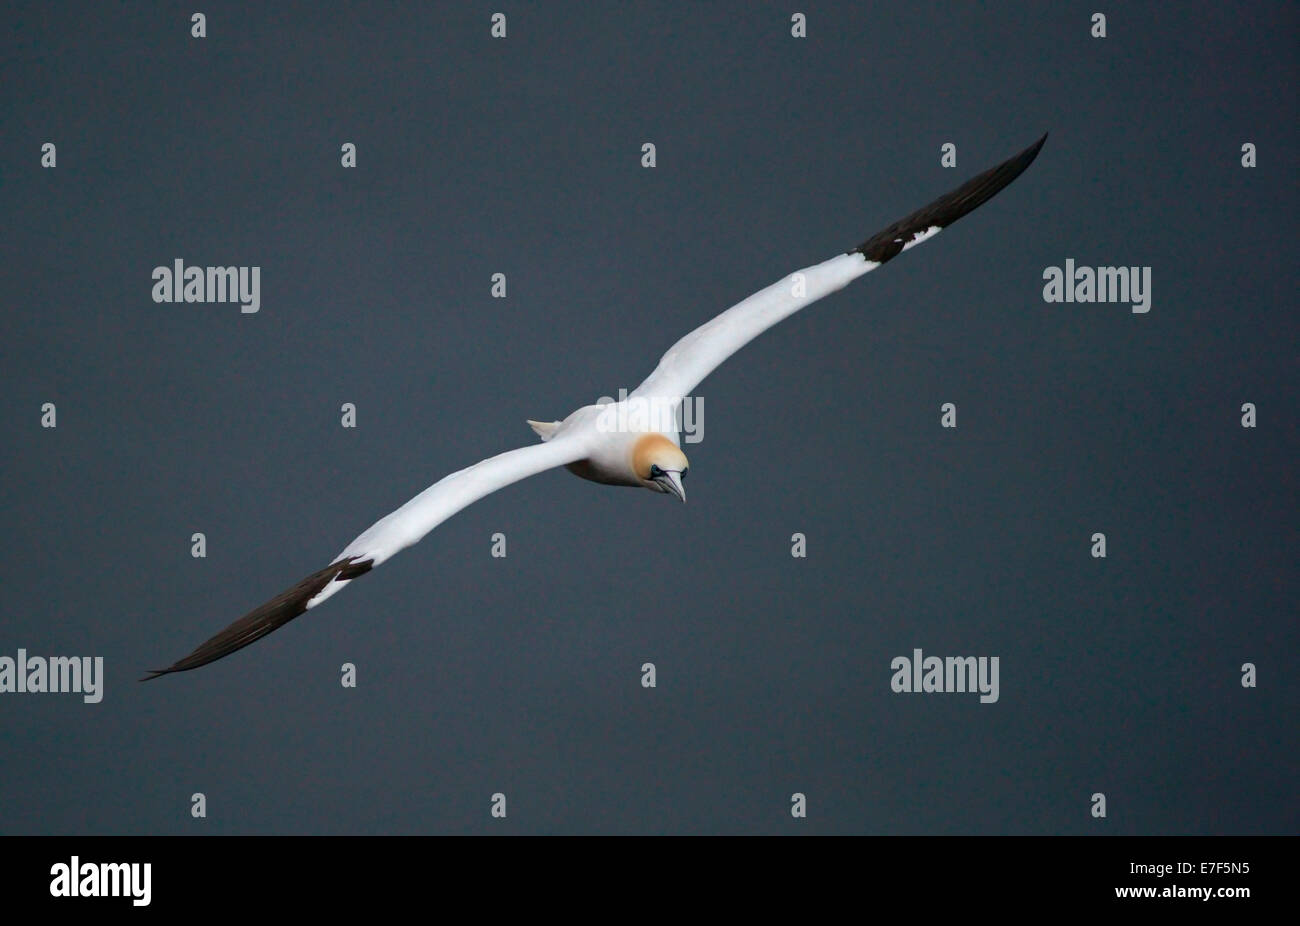 Northern Gannet (Morus bassanus) in flight, Heligoland or Helgoland, Schleswig-Holstein, Germany - Stock Image